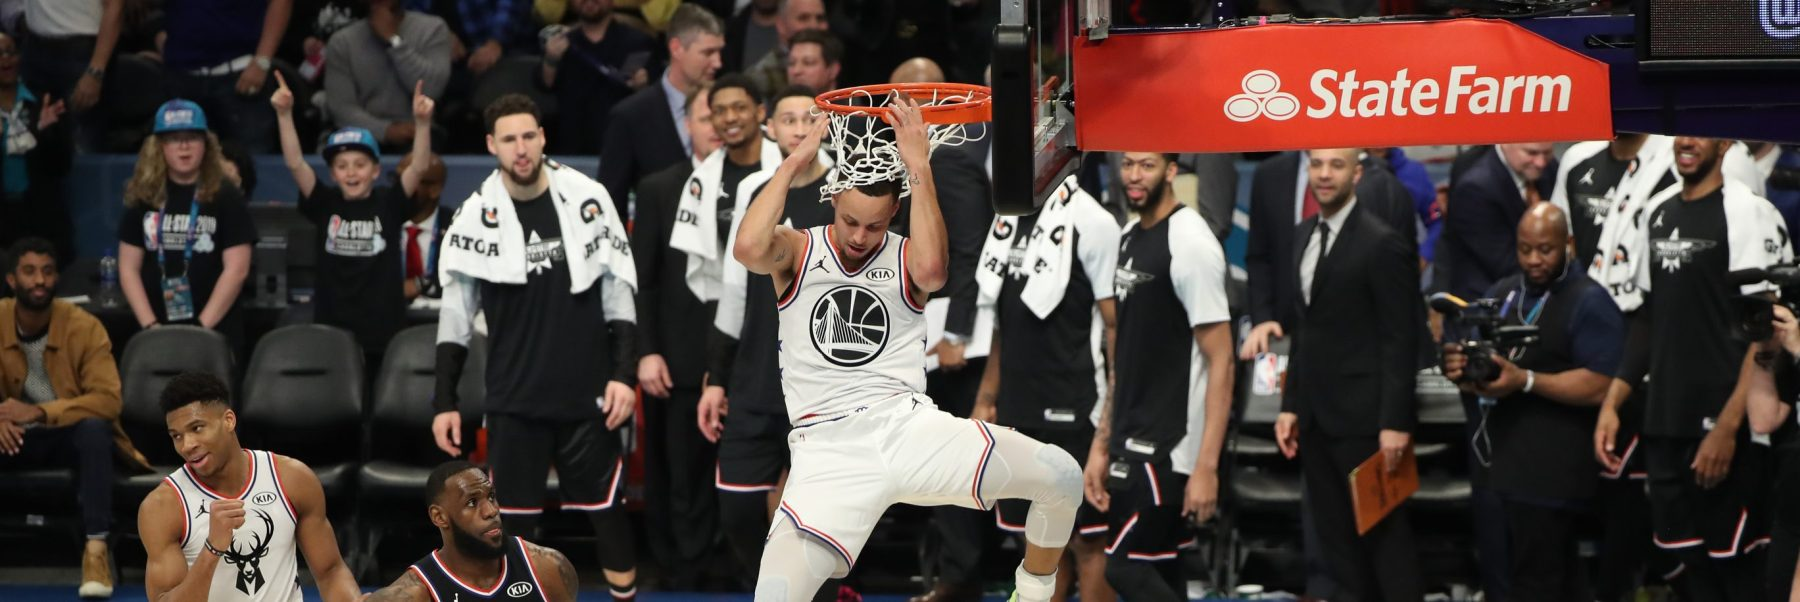 Stephen Curry #30 of Team Giannis dunks during the 2019 NBA All-Star Game on February 17, 2019 at the Spectrum Center in Charlotte, North Carolina. (Photo by Joe Murphy/NBAE via Getty Images)